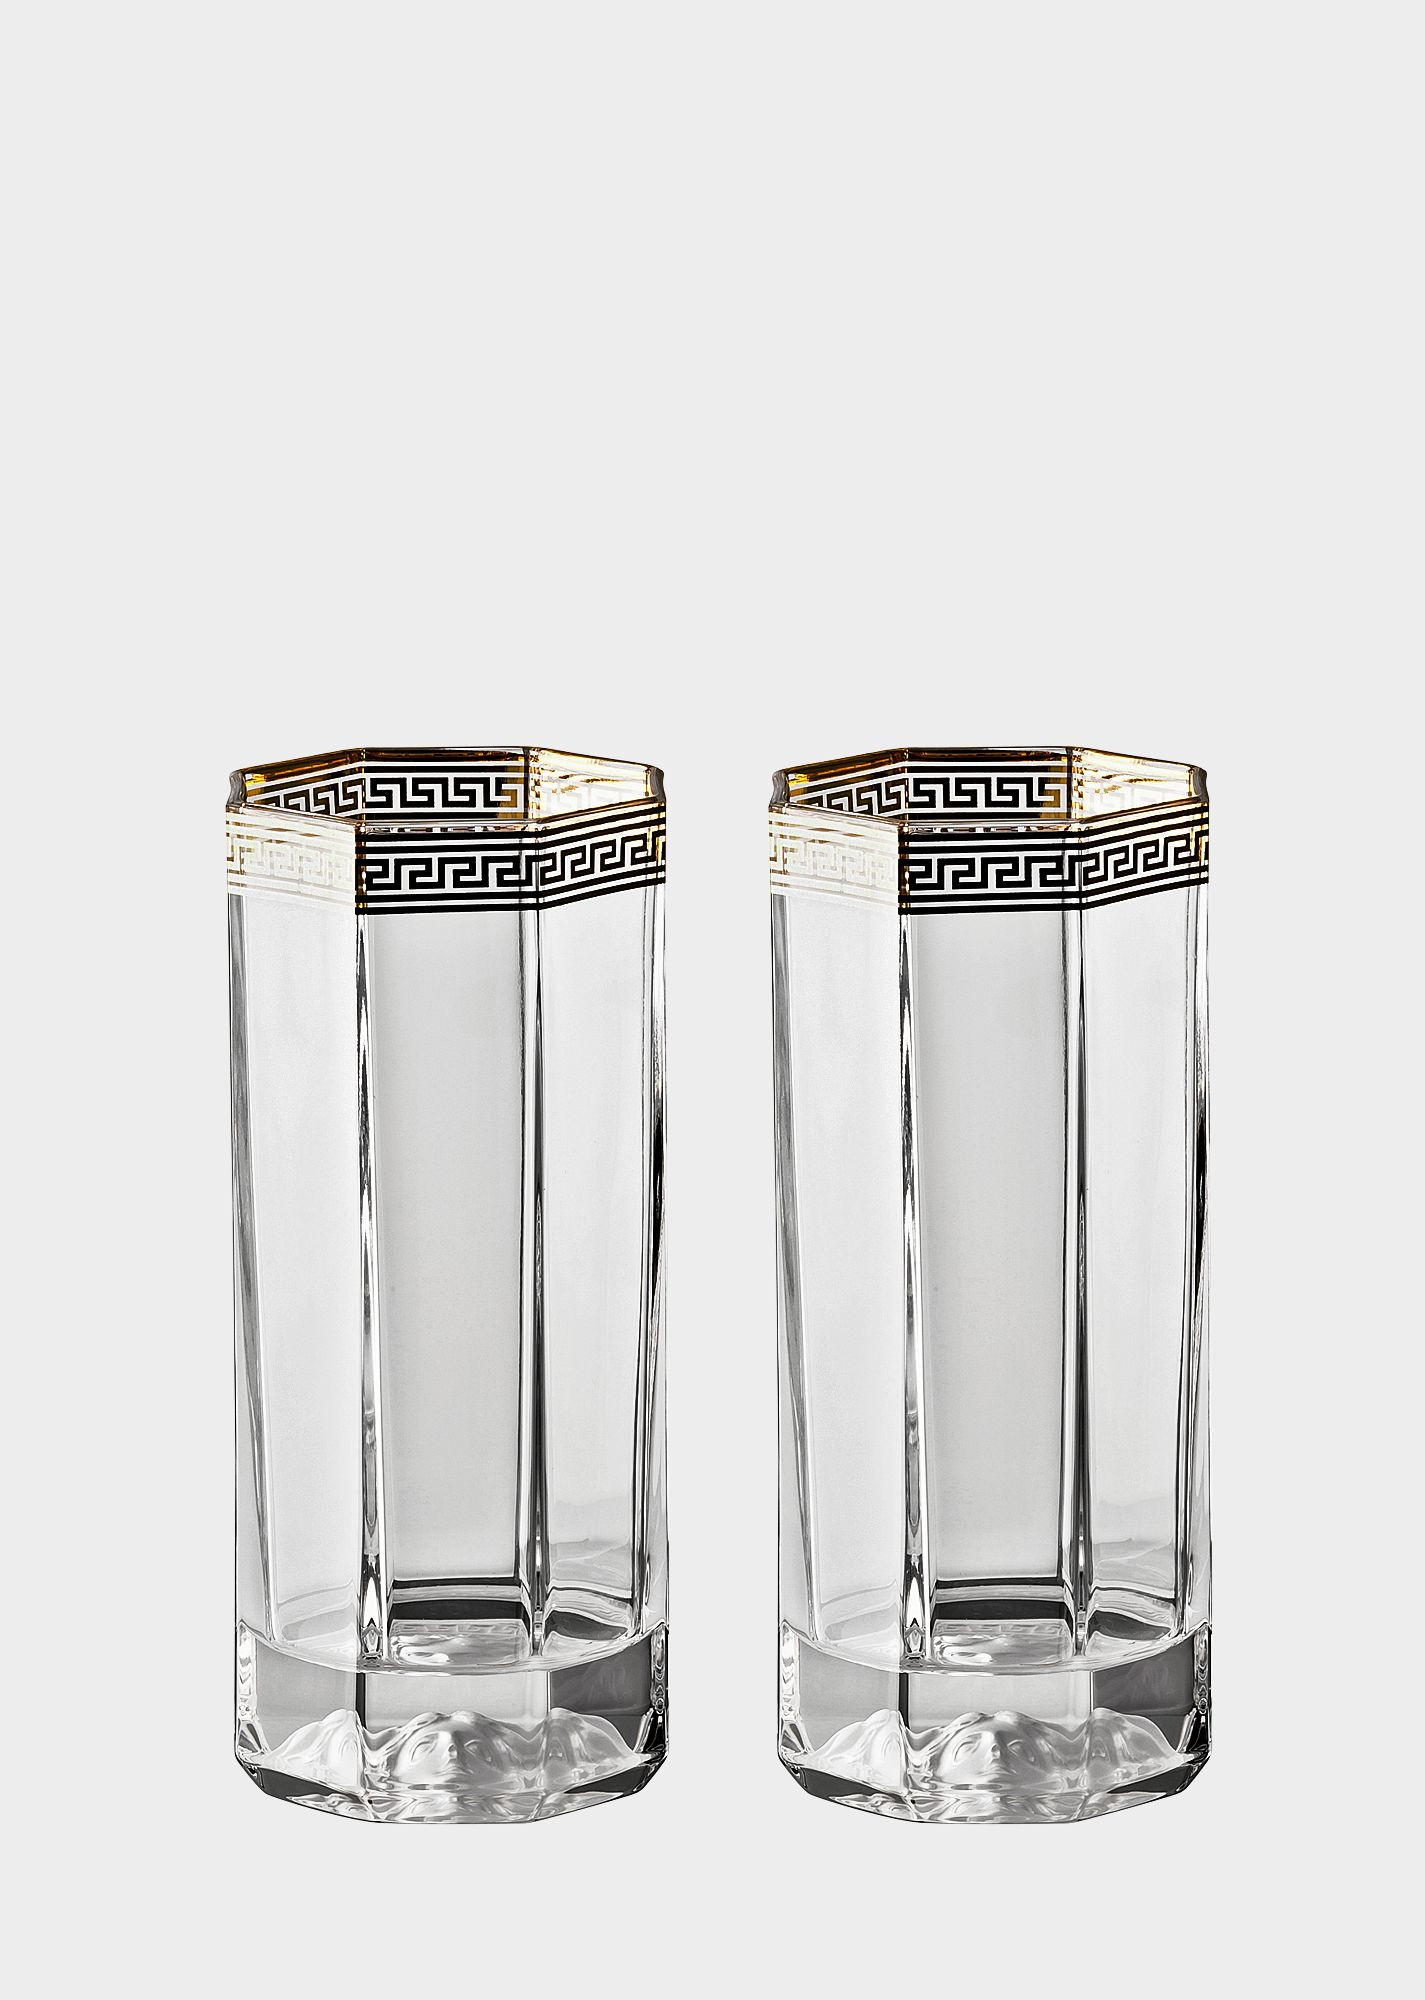 7 Inch Glass Vase Of 21 Crystal Glass Vase the Weekly World Intended for Versace Home Luxury Glass Crystal